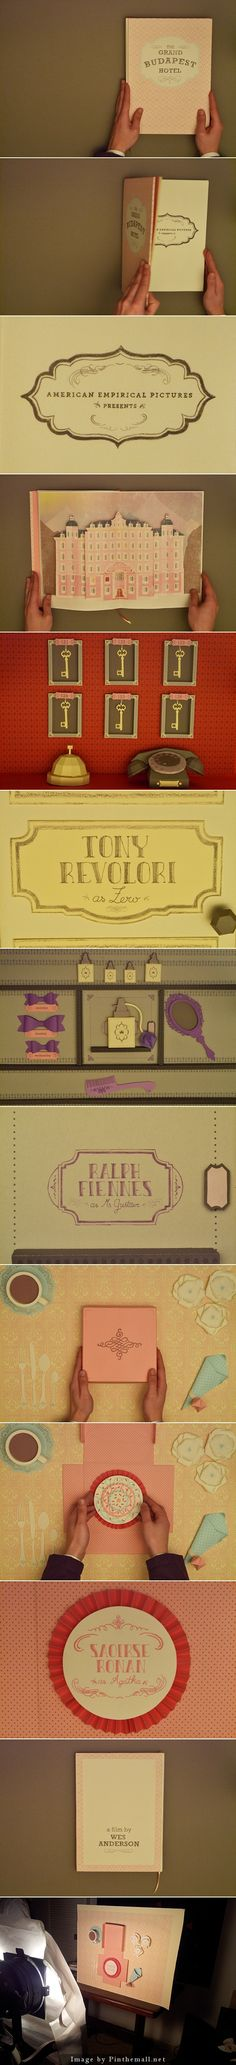 The Grand Budapest Hotel by Sabrina Giselle Acevedo.